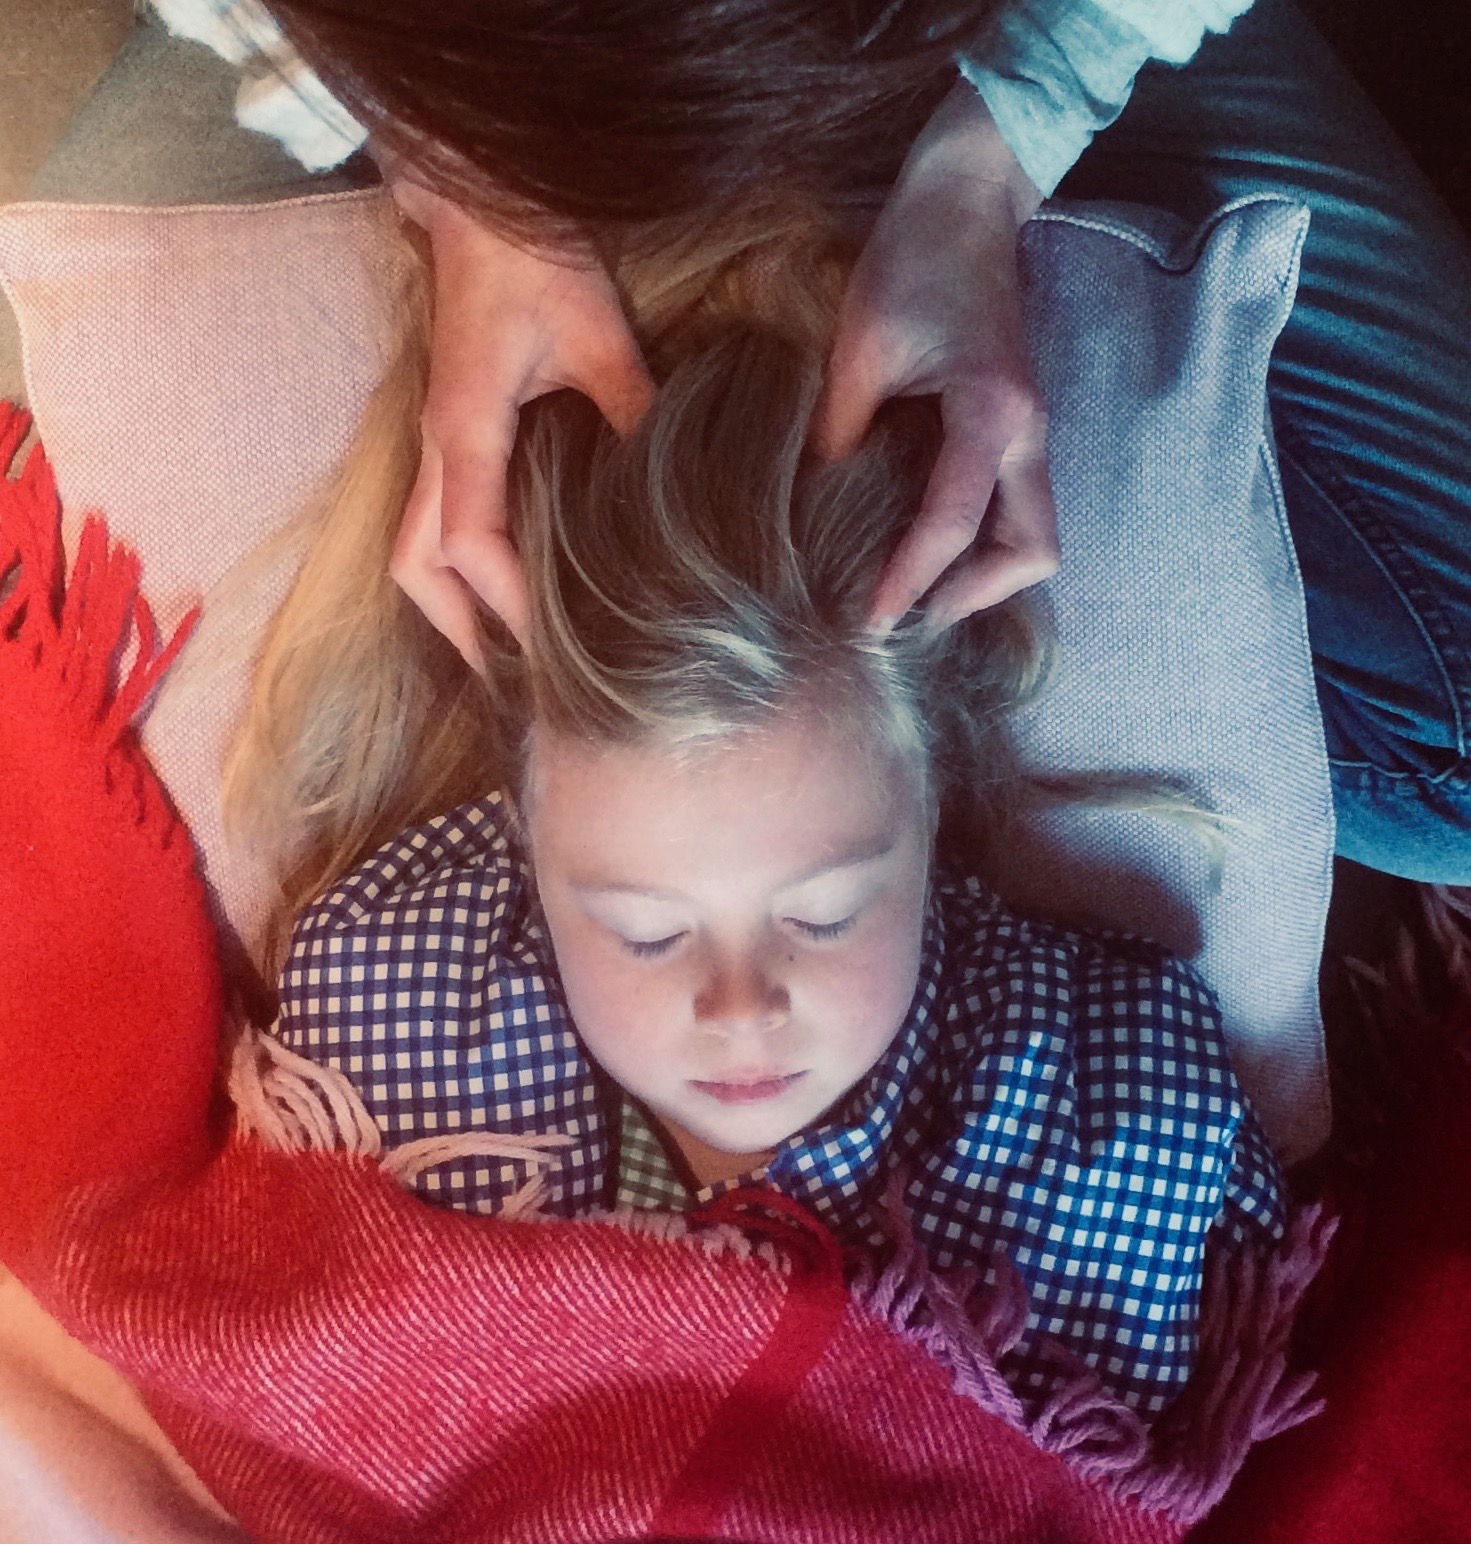 Family head massage workshop - Friday 22nd November 20195.30pm to 7pmat Botelet FarmThis candlelit head massage workshop is for parents/carers and their children to learn together how to give a calming head massage. Costs £15 for each parent and child (£7.50 per person). Book your place on this course.